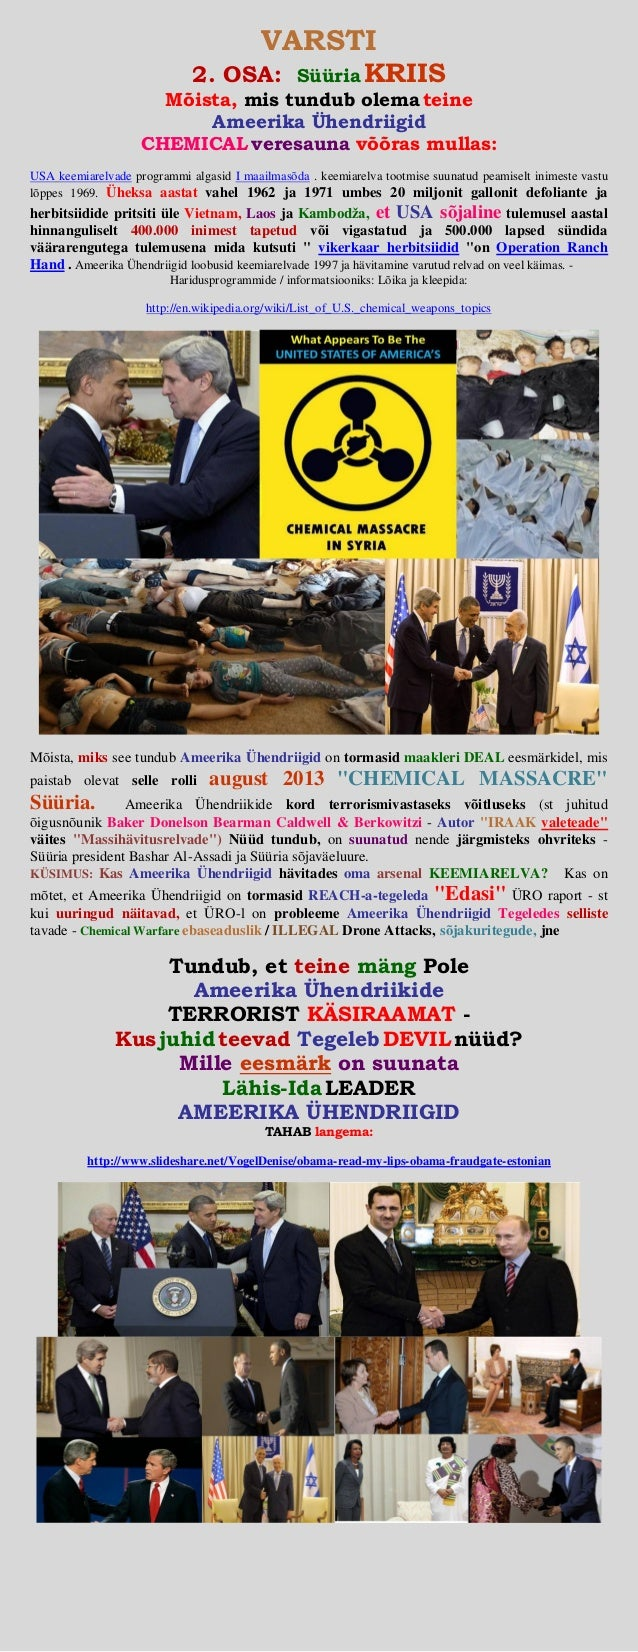 Syria crisis   (united states of america) chemical weapons attack (estonian)